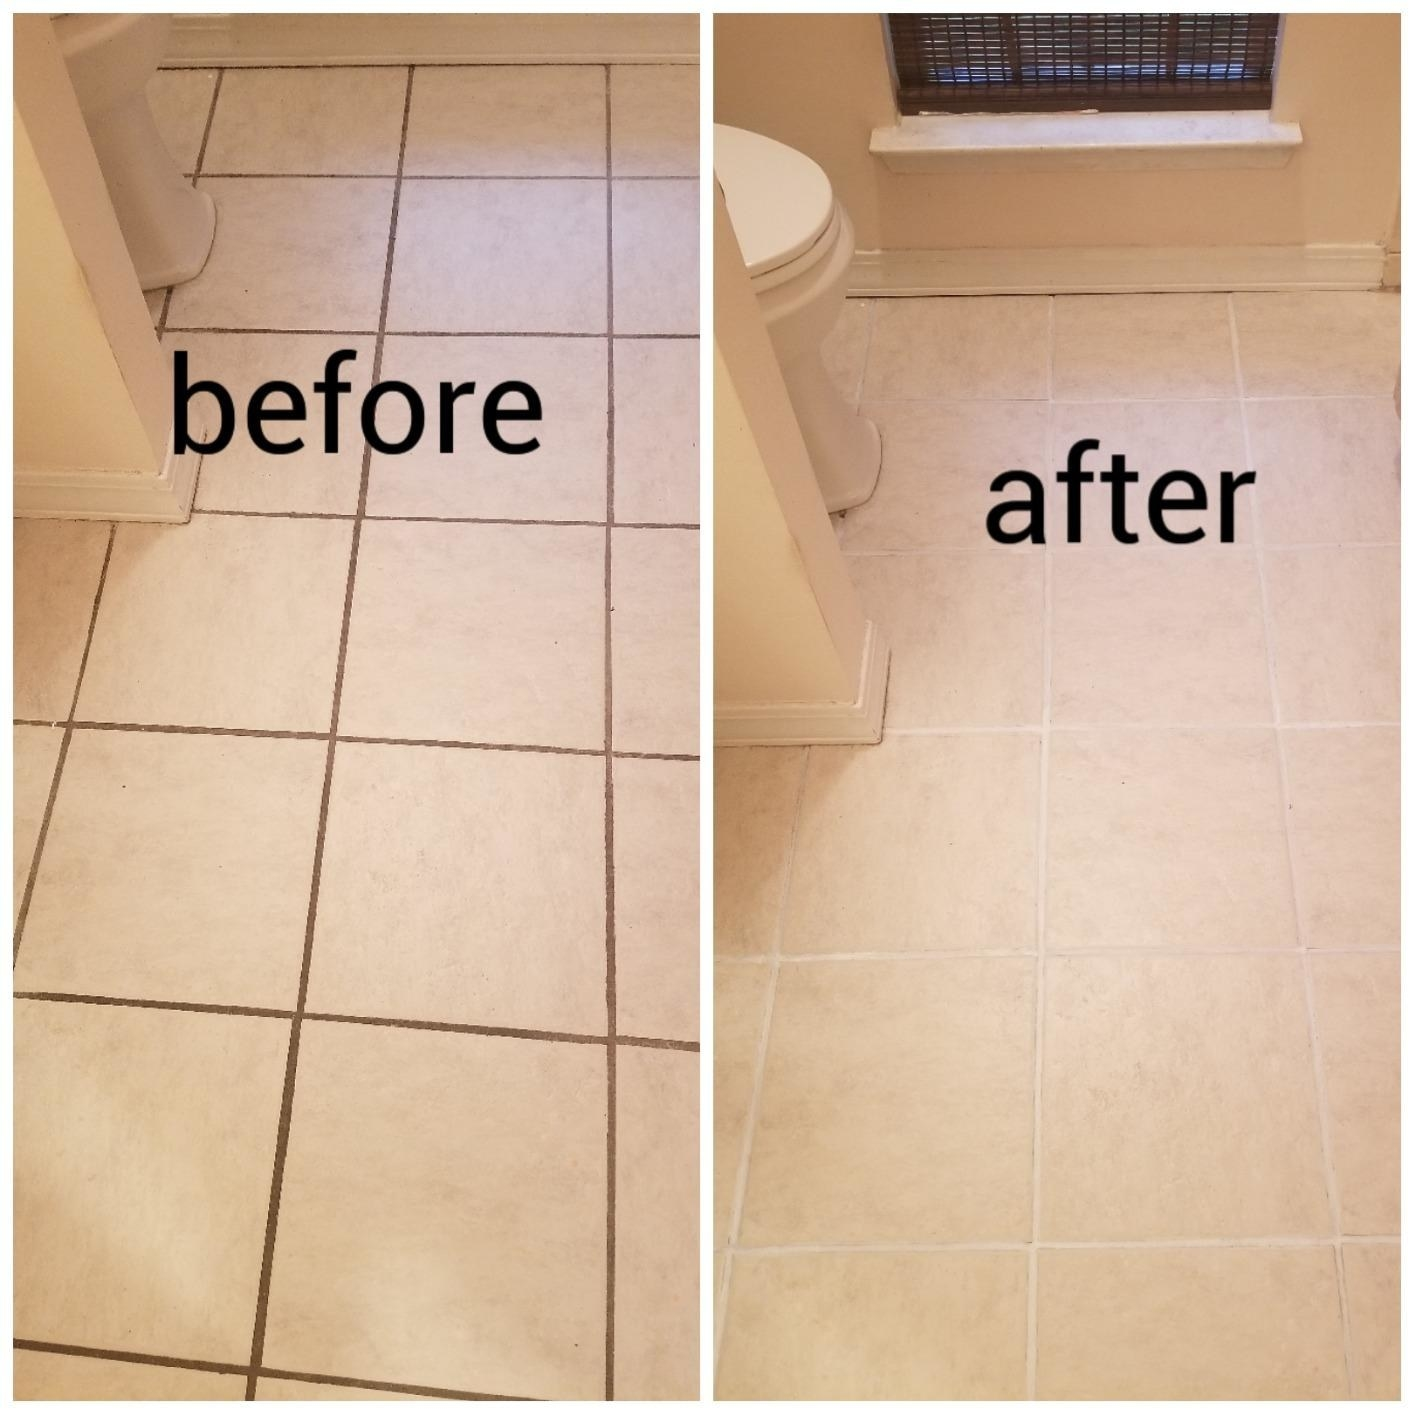 Before shot of tiles with brown grout vs after shot white grout